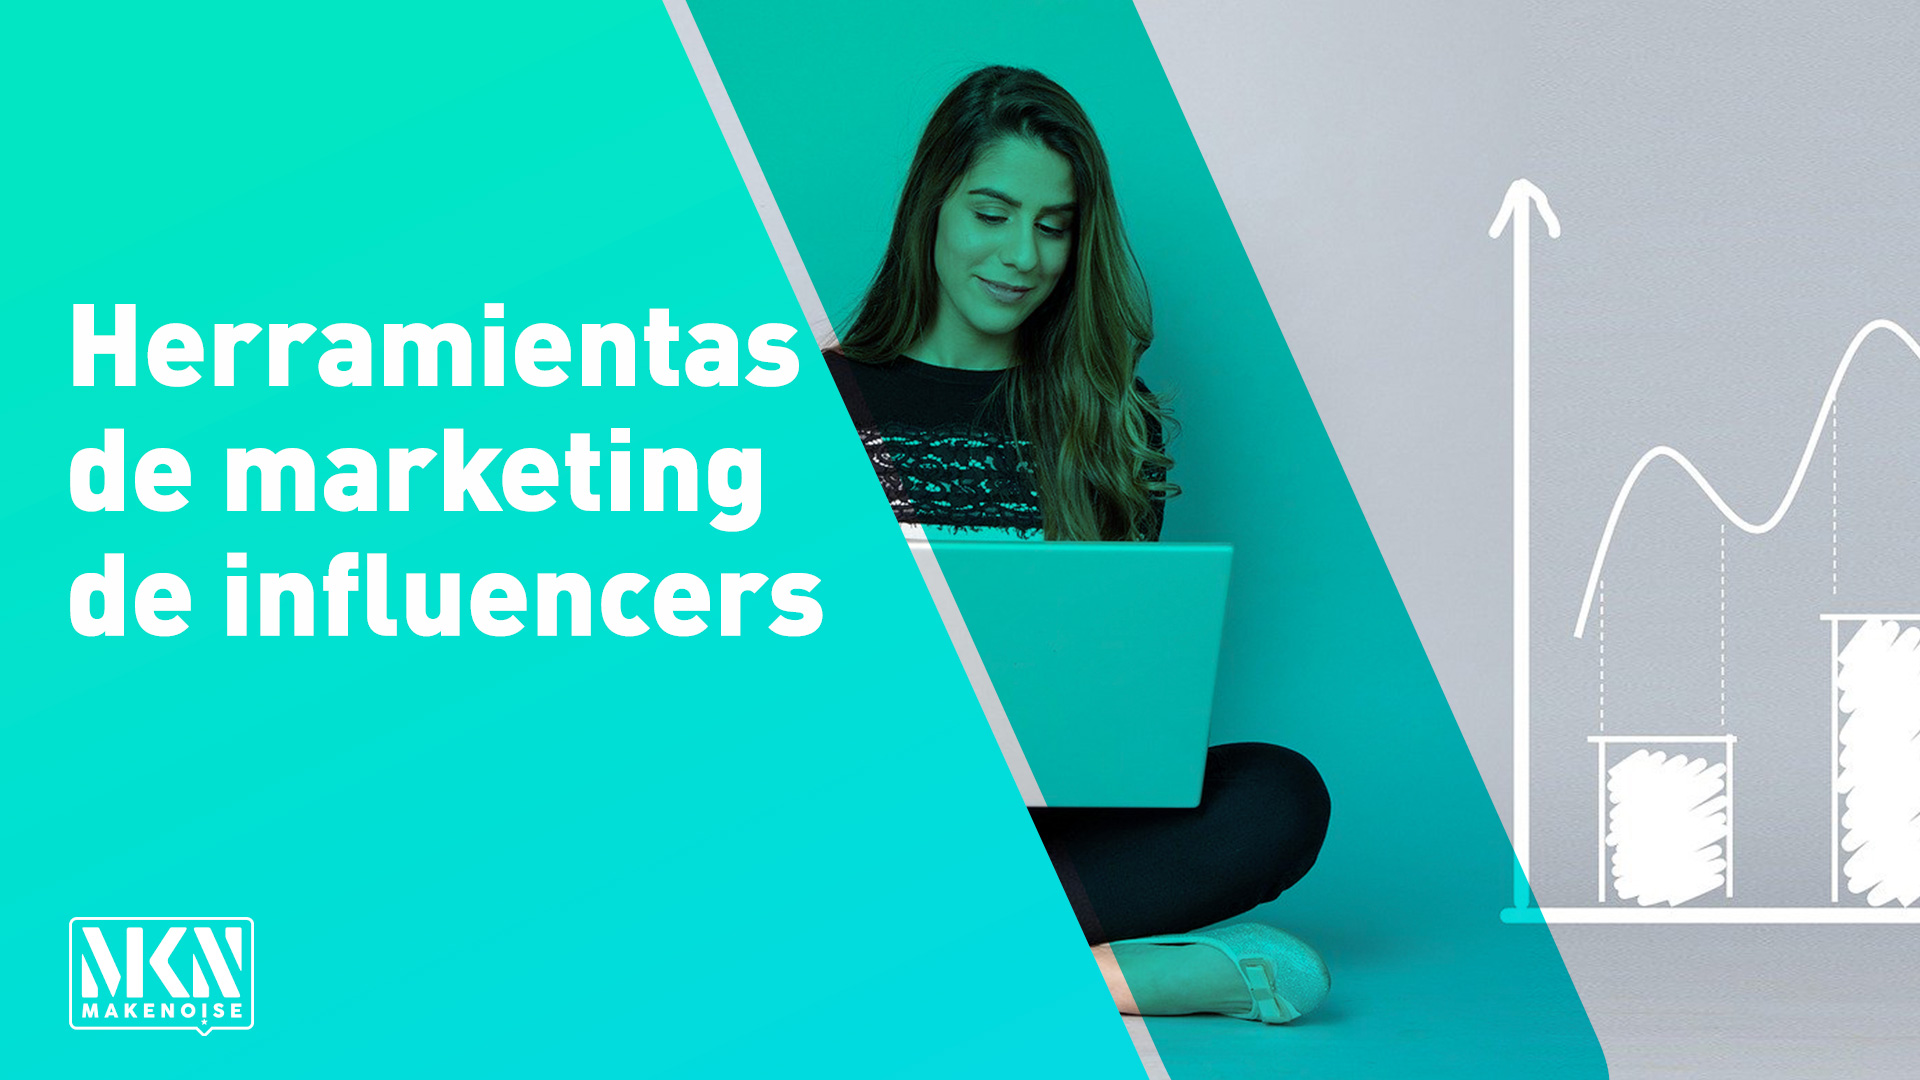 Herramientas de marketing de influencers